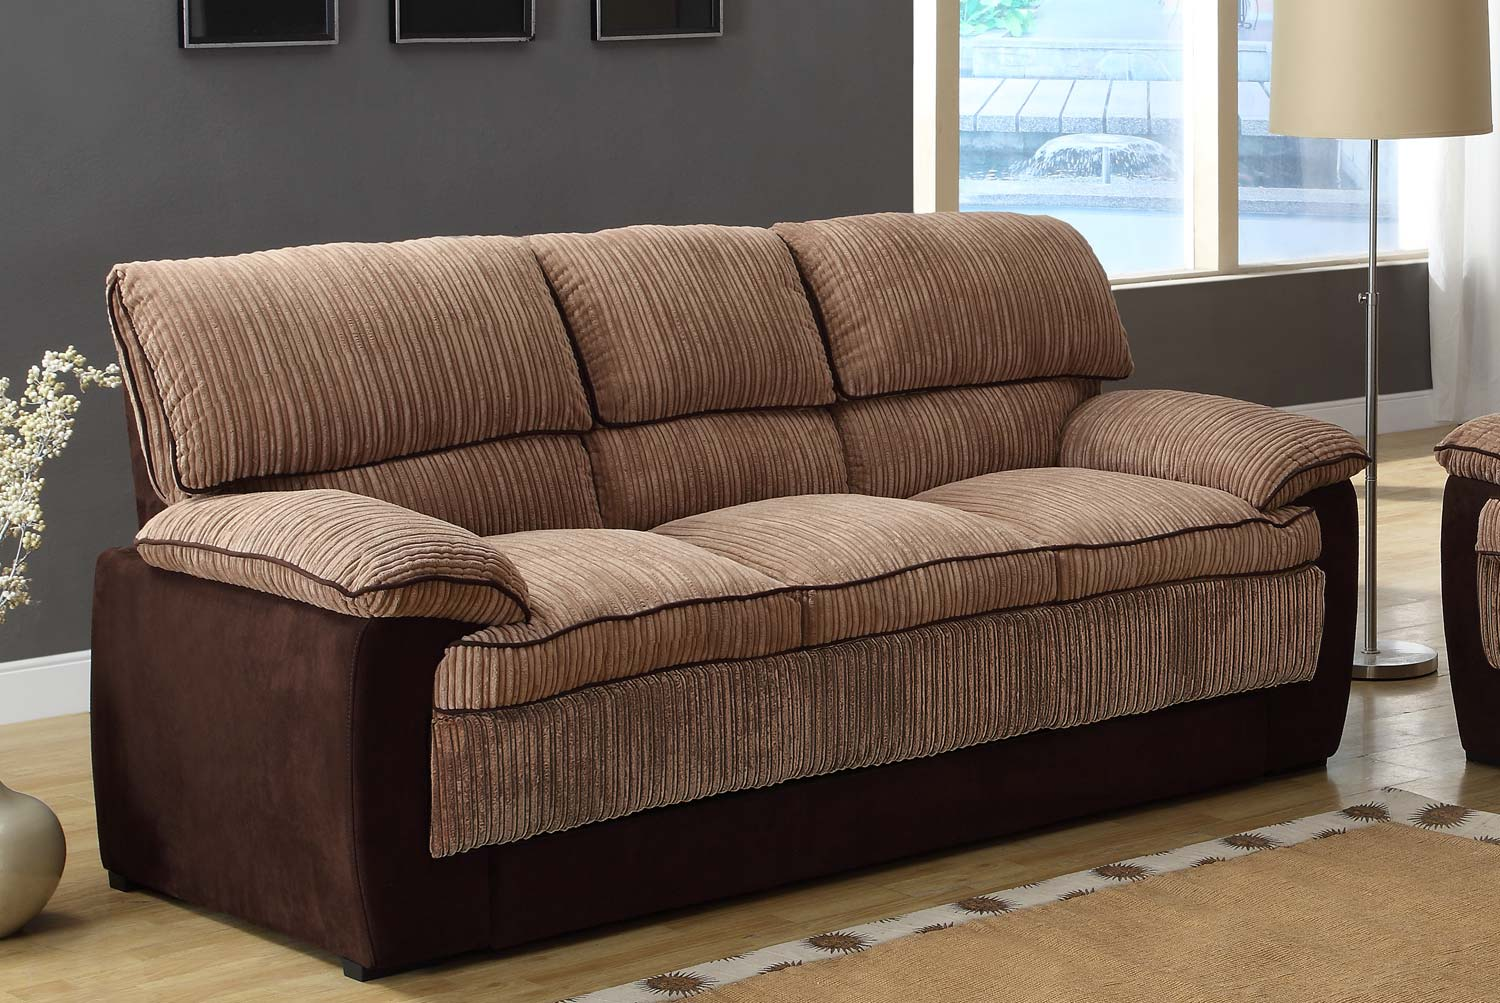 Attirant Homelegance McCollum Sofa   Brown   Corduroy And Microfiber